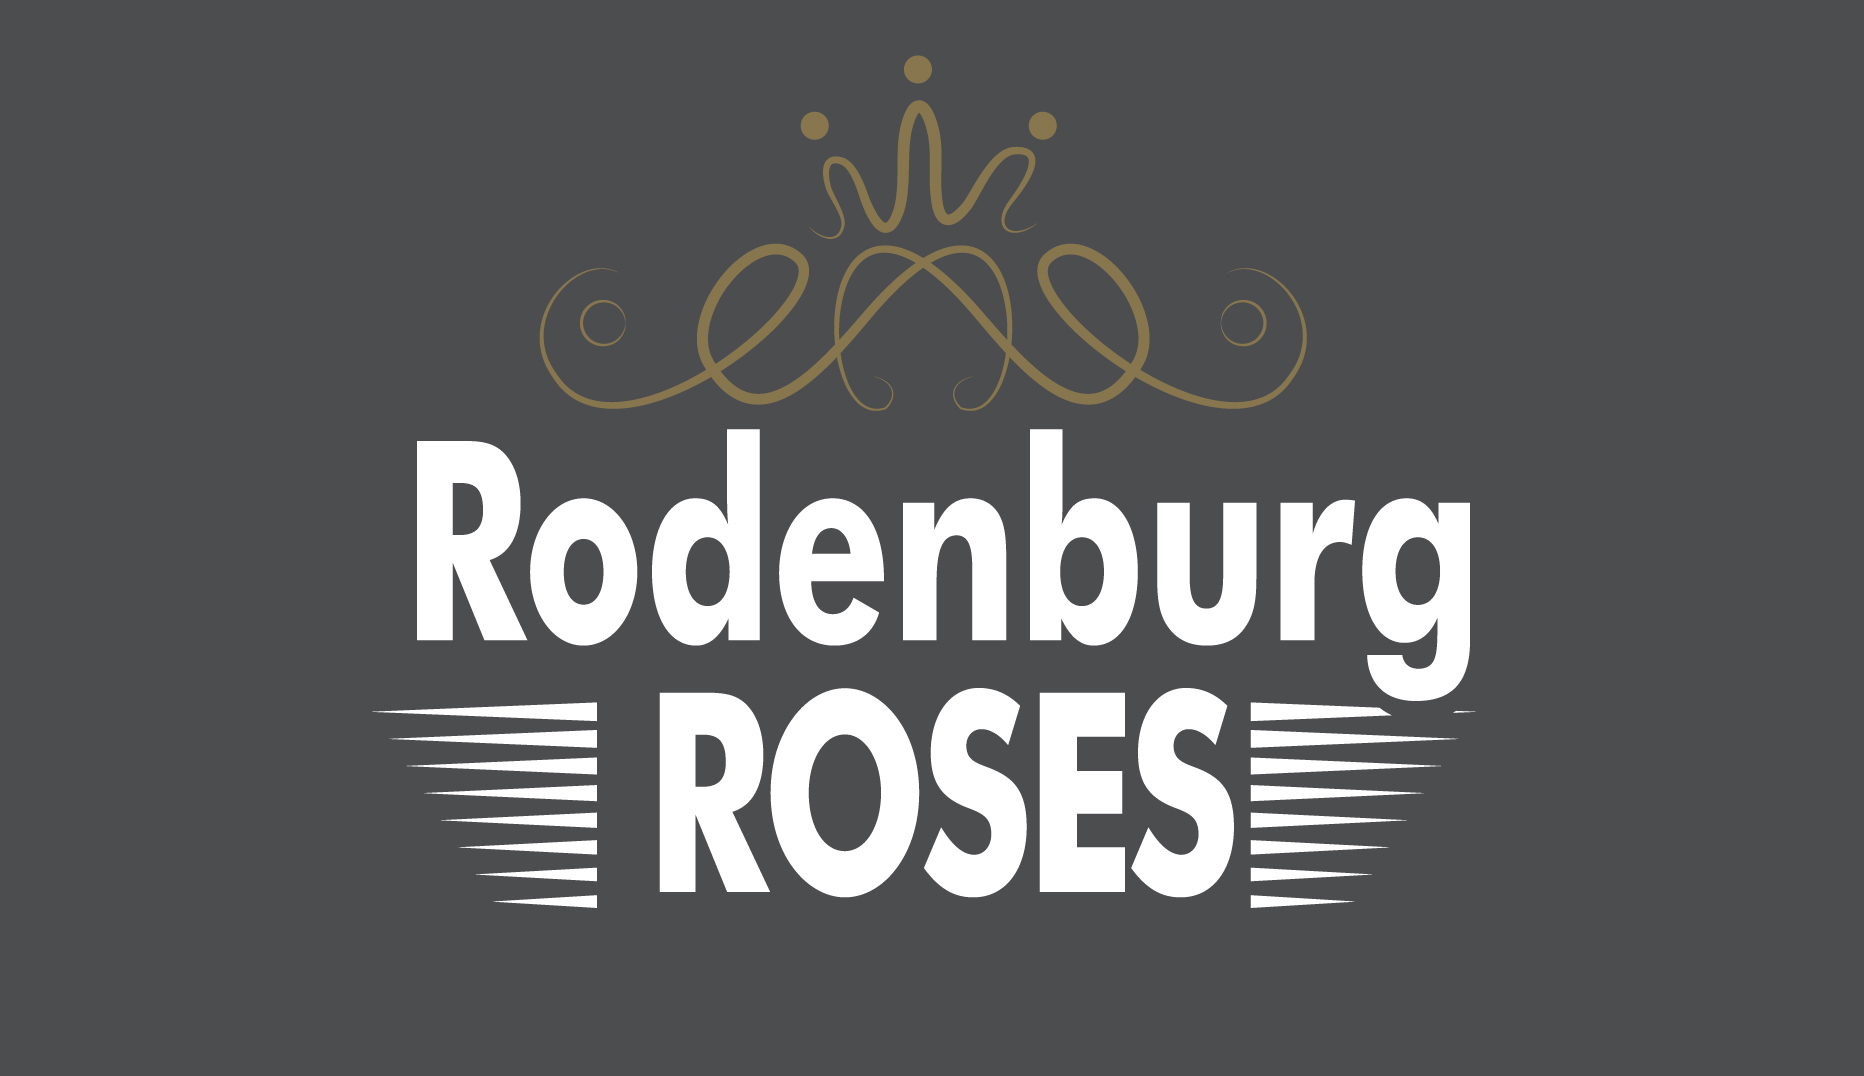 rodenburg roses logo website